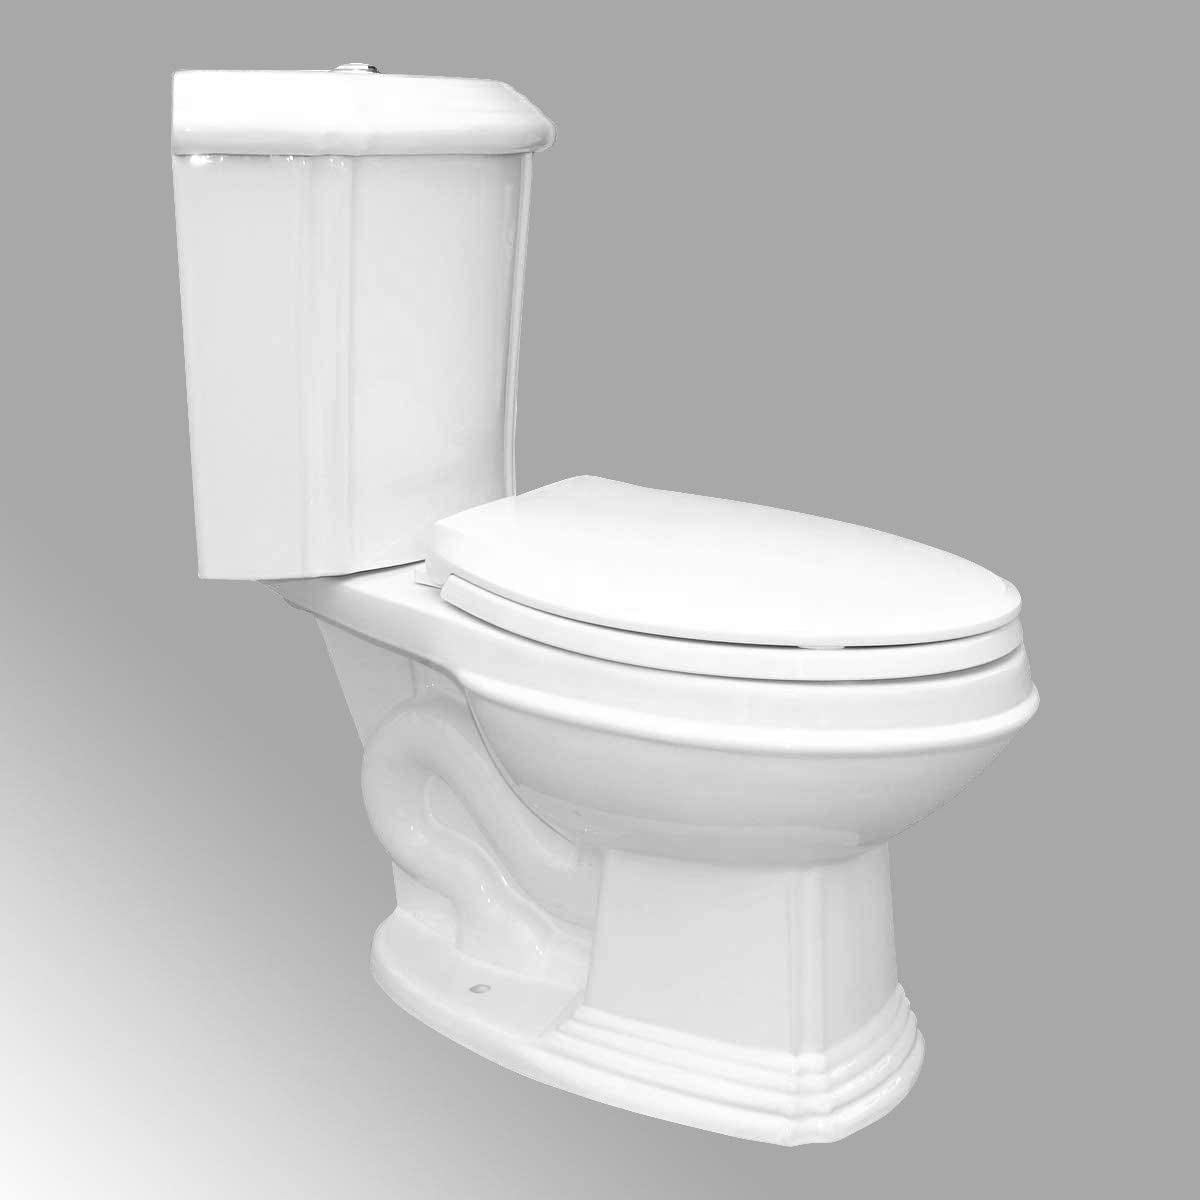 Renovator's Supply White Porcelain Elongated Space Saving Corner Toilet